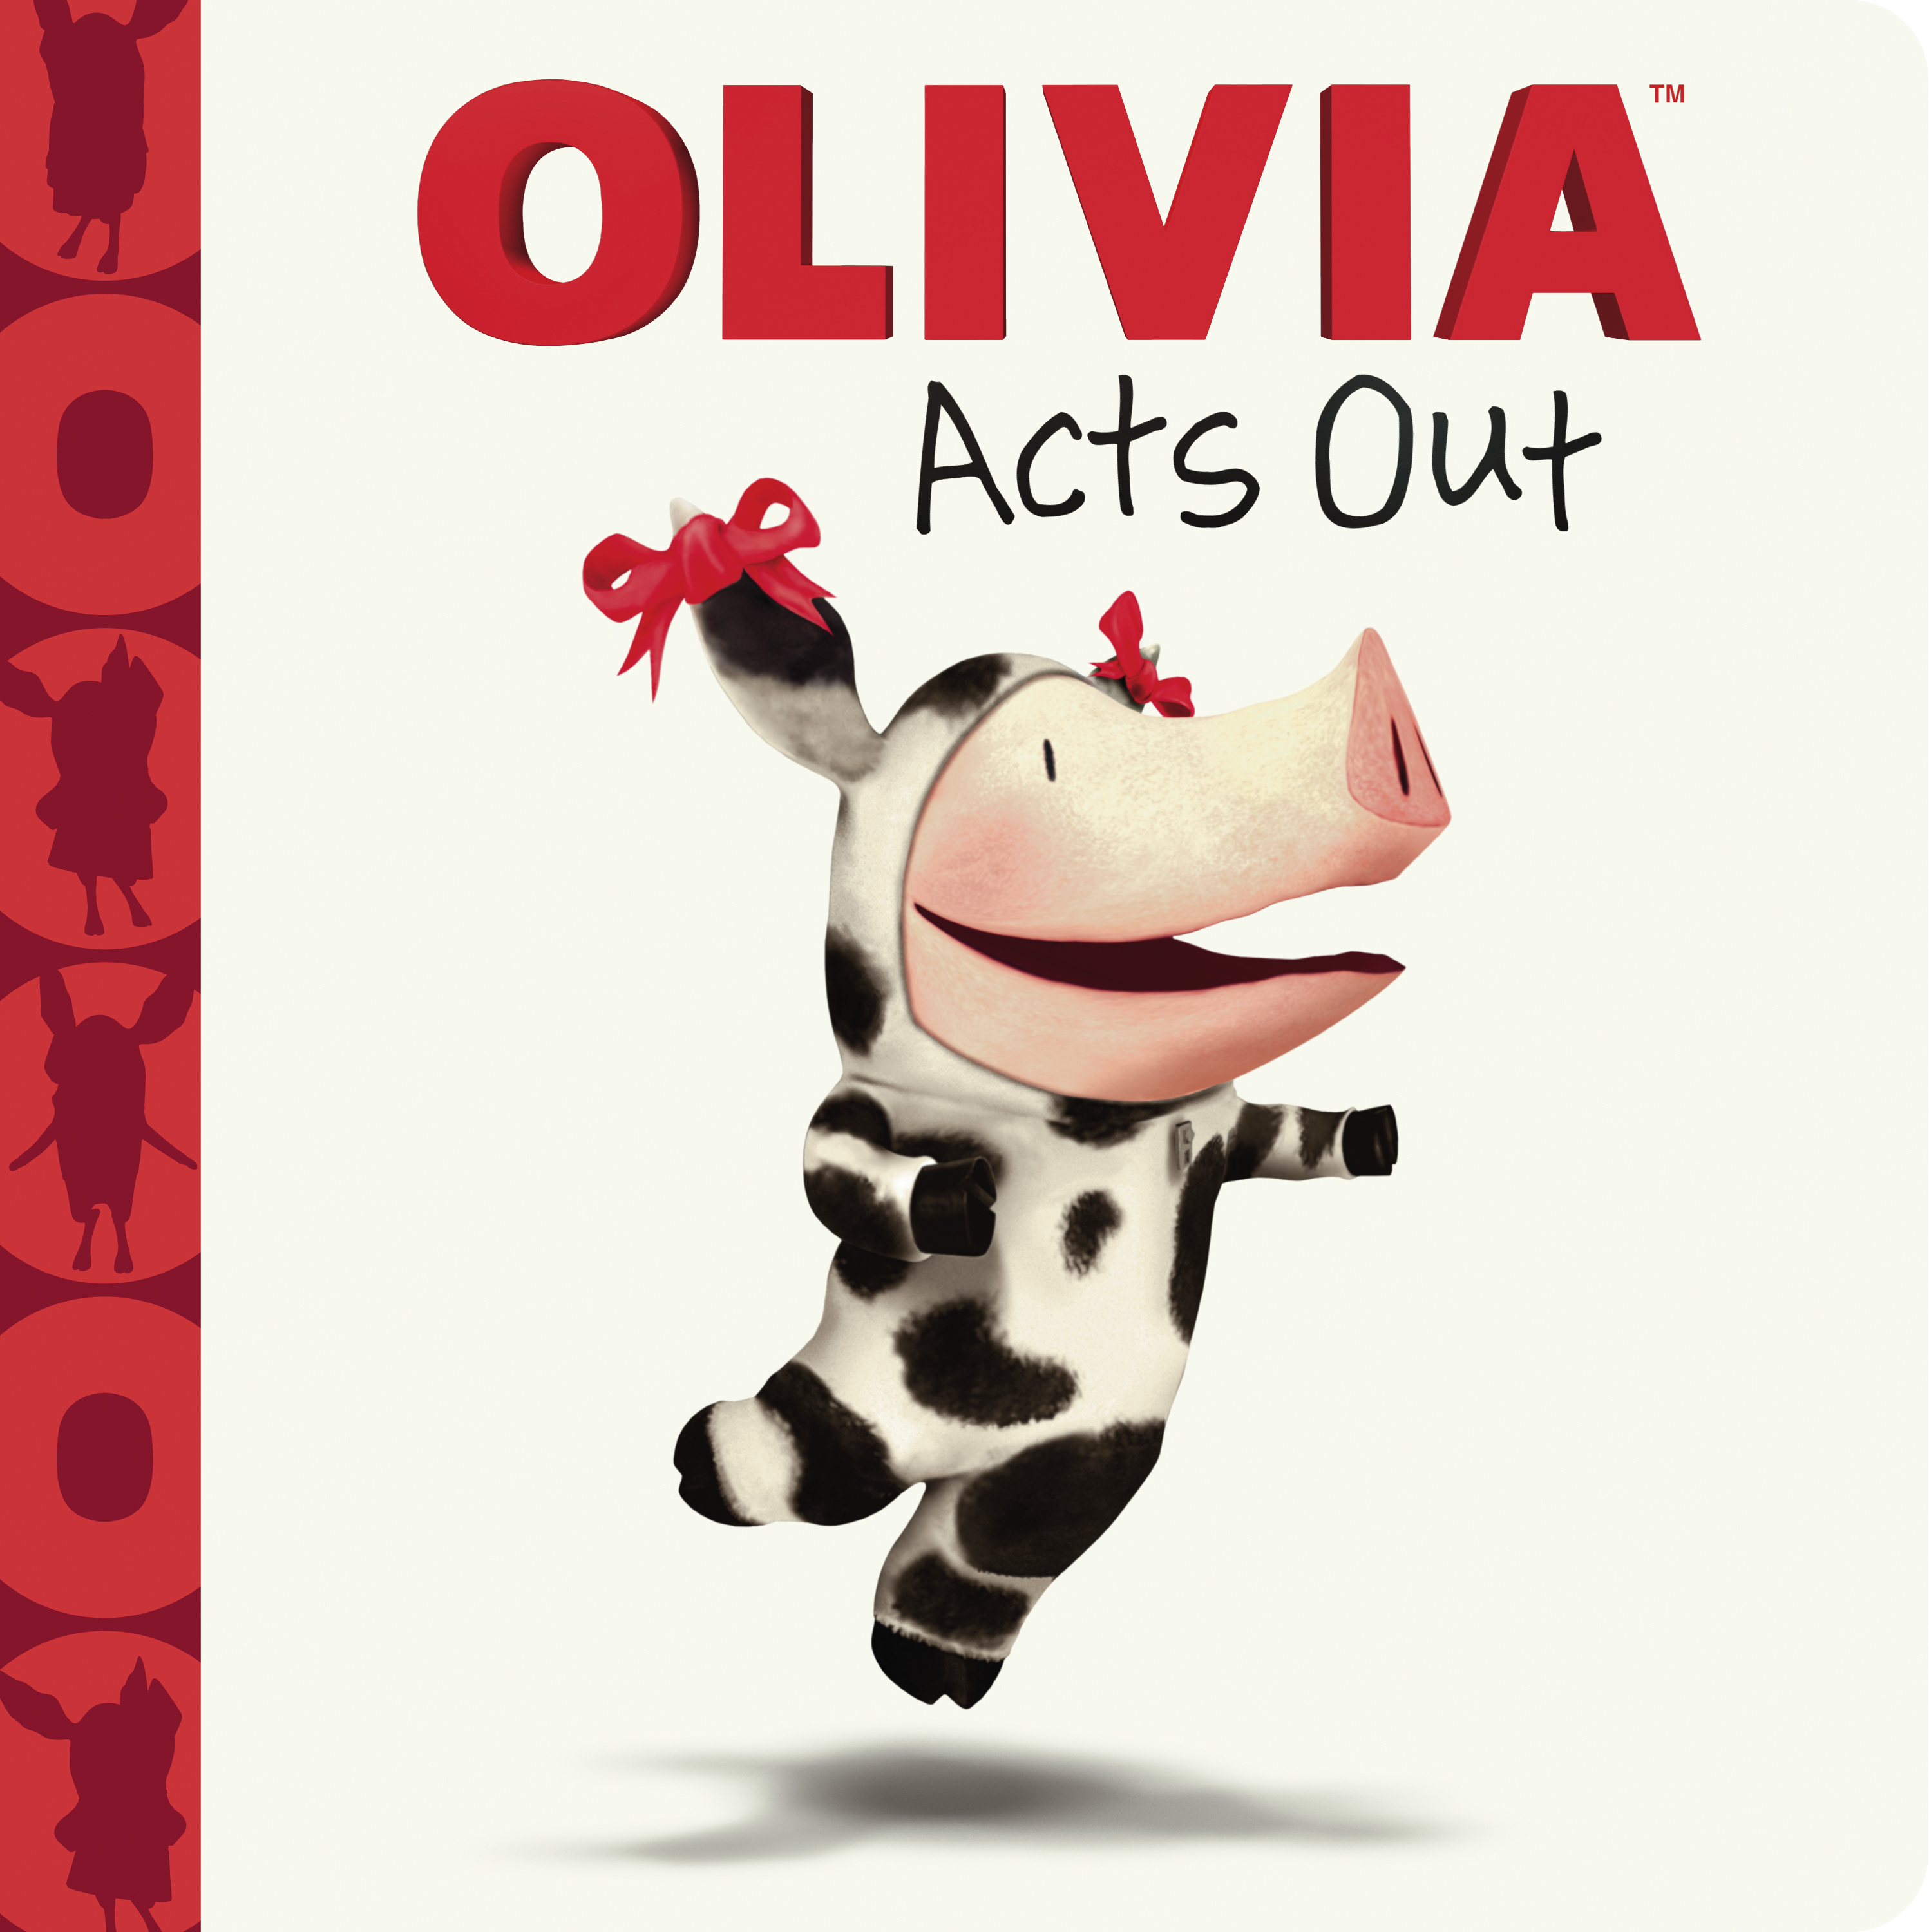 OLIVIA Acts Out | Book by Jodie Shepherd, Patrick ...